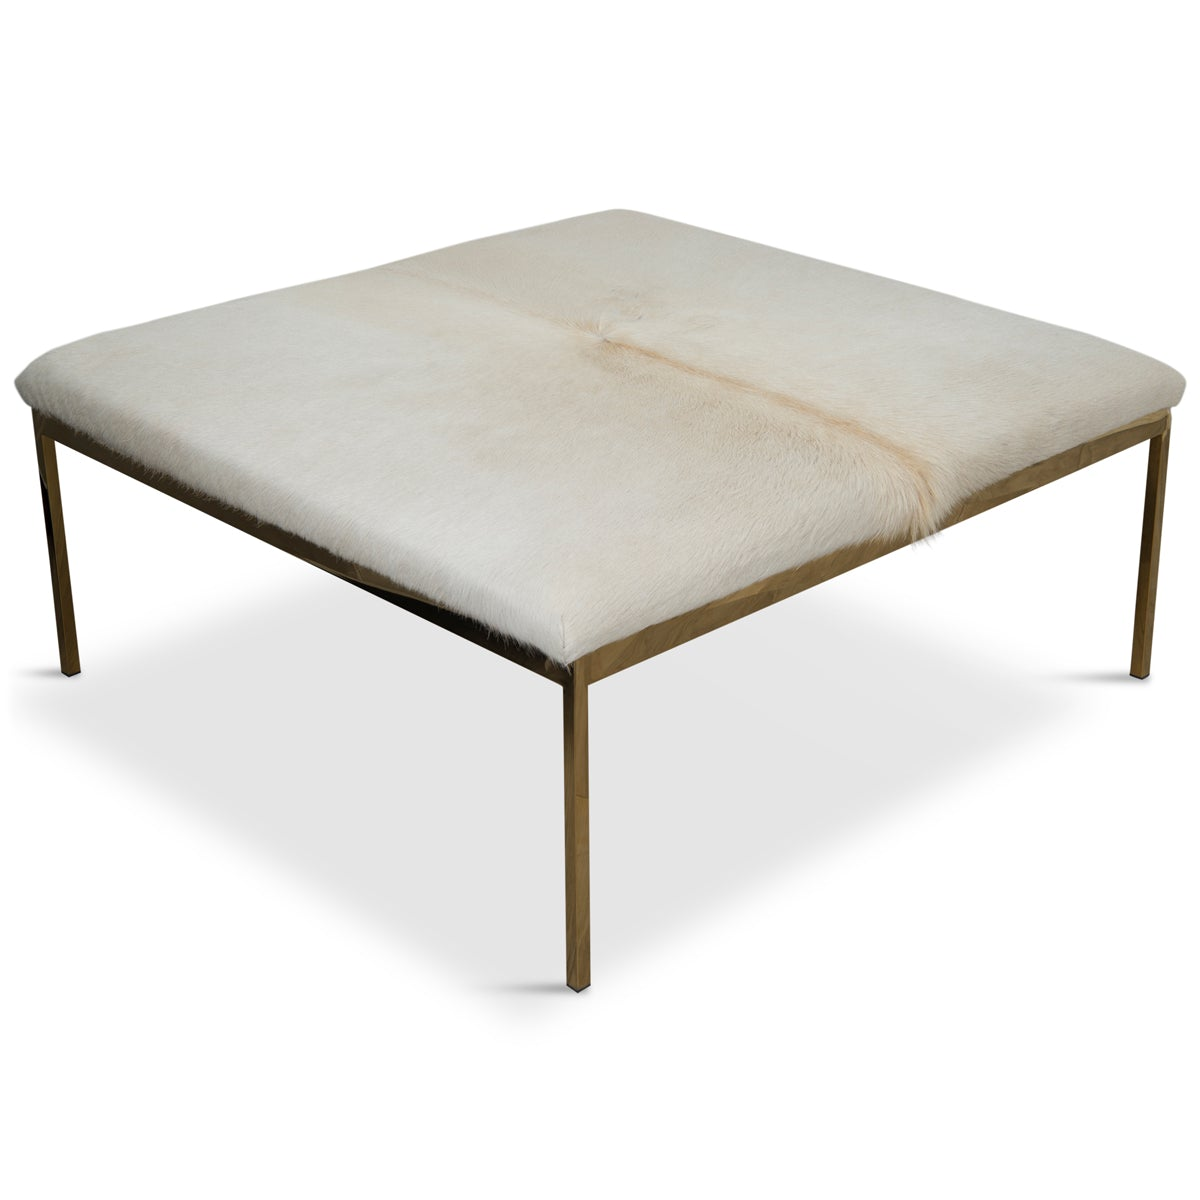 Bordeaux Ottoman in Off-White Cowhide - ModShop1.com